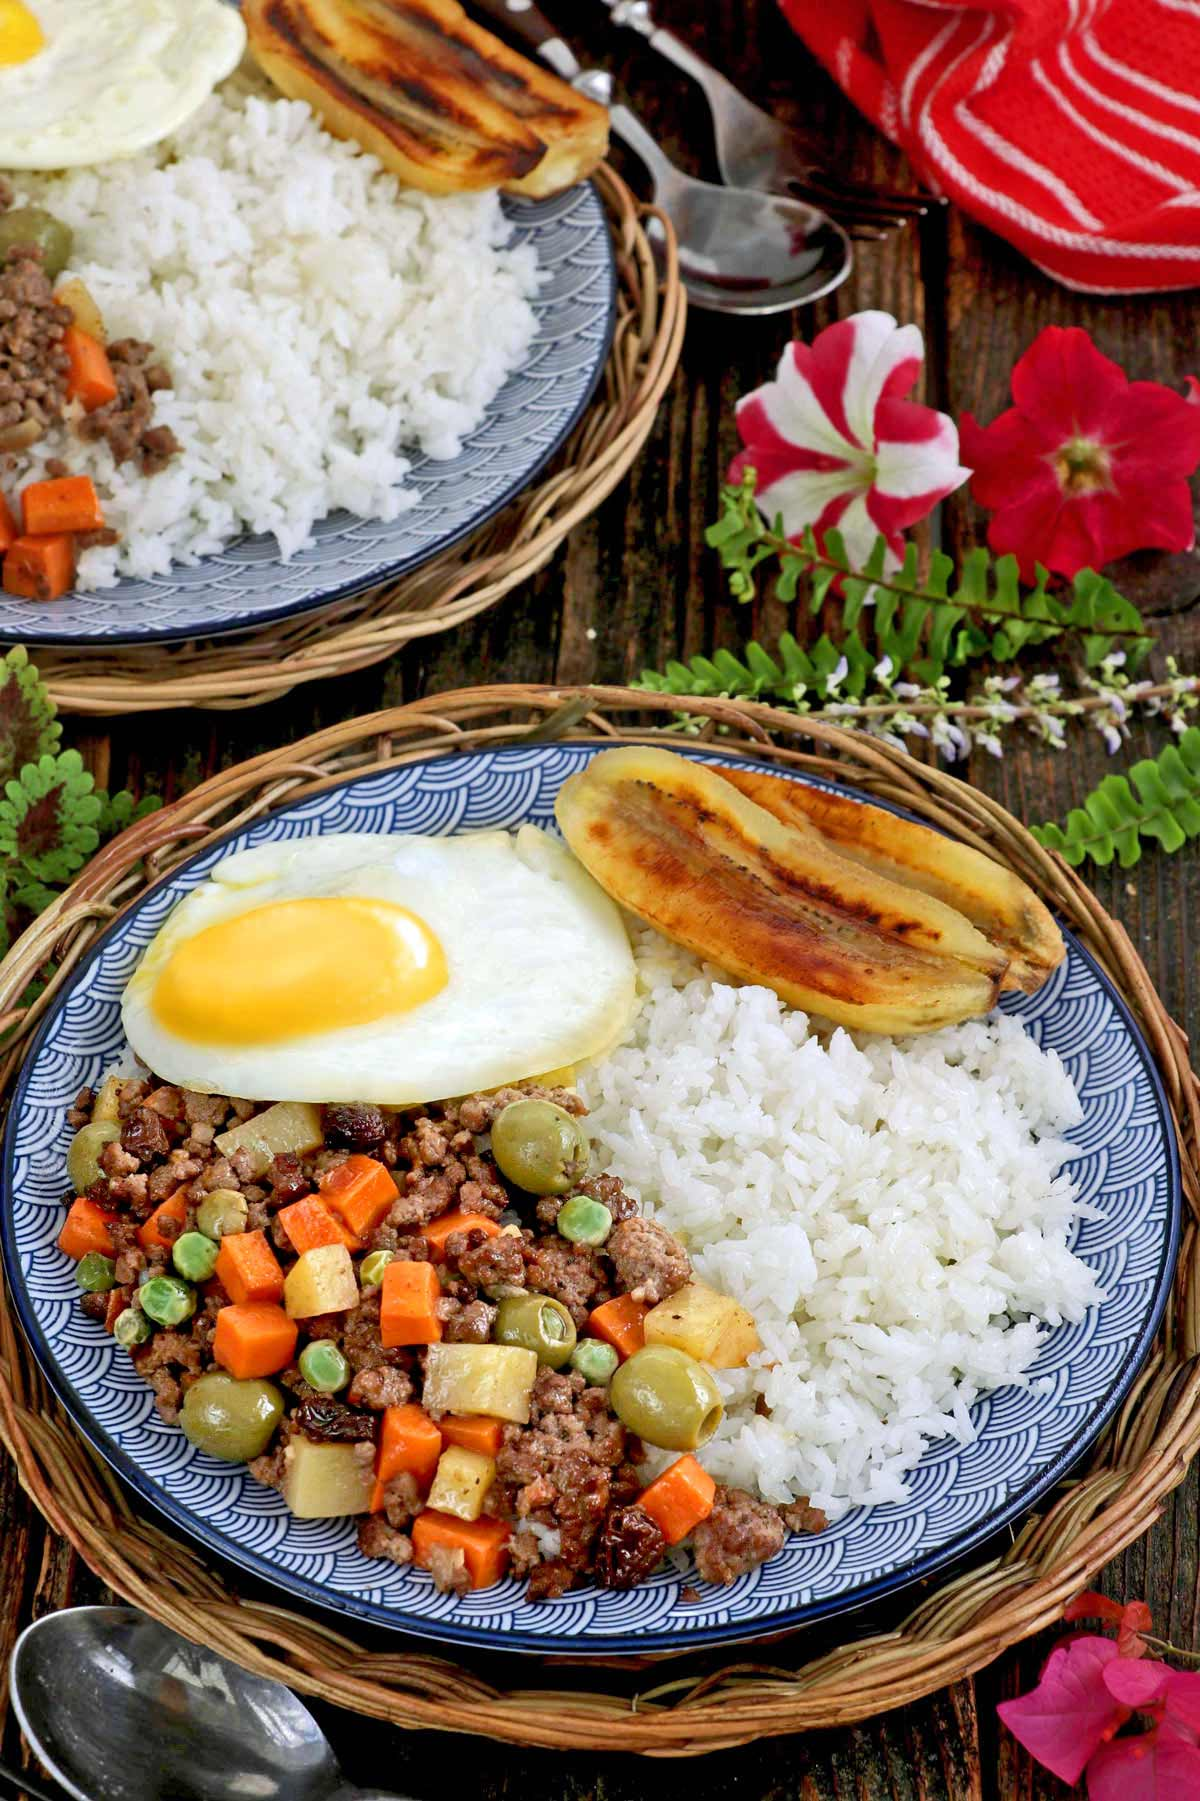 A plate of rice with cooked ground meat, fried egg and fried banana.